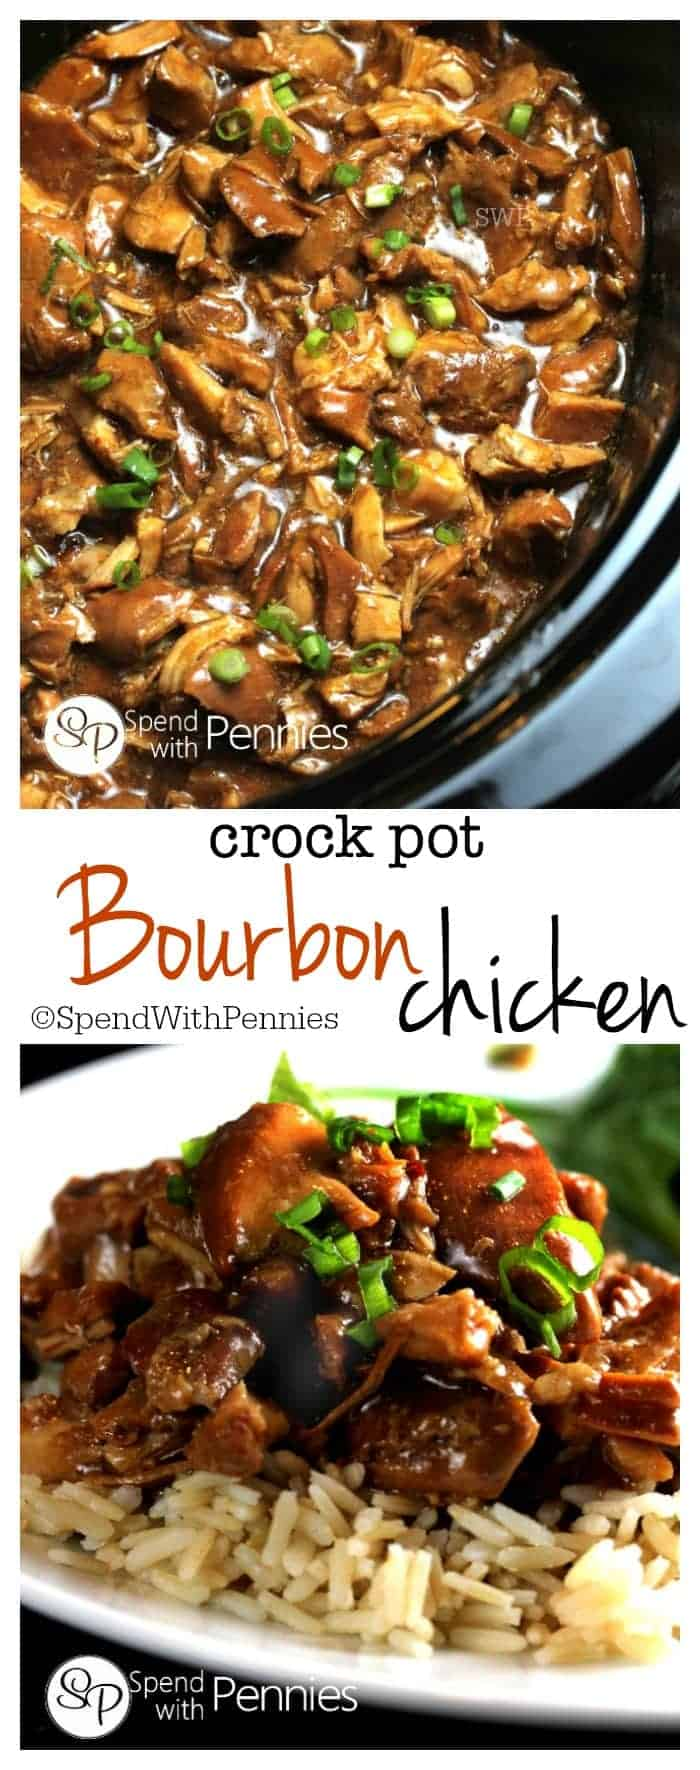 This delicious Bourbon Chicken recipe is one of our favorites! This is great to come home to on a chilly day and is perfect served over rice!